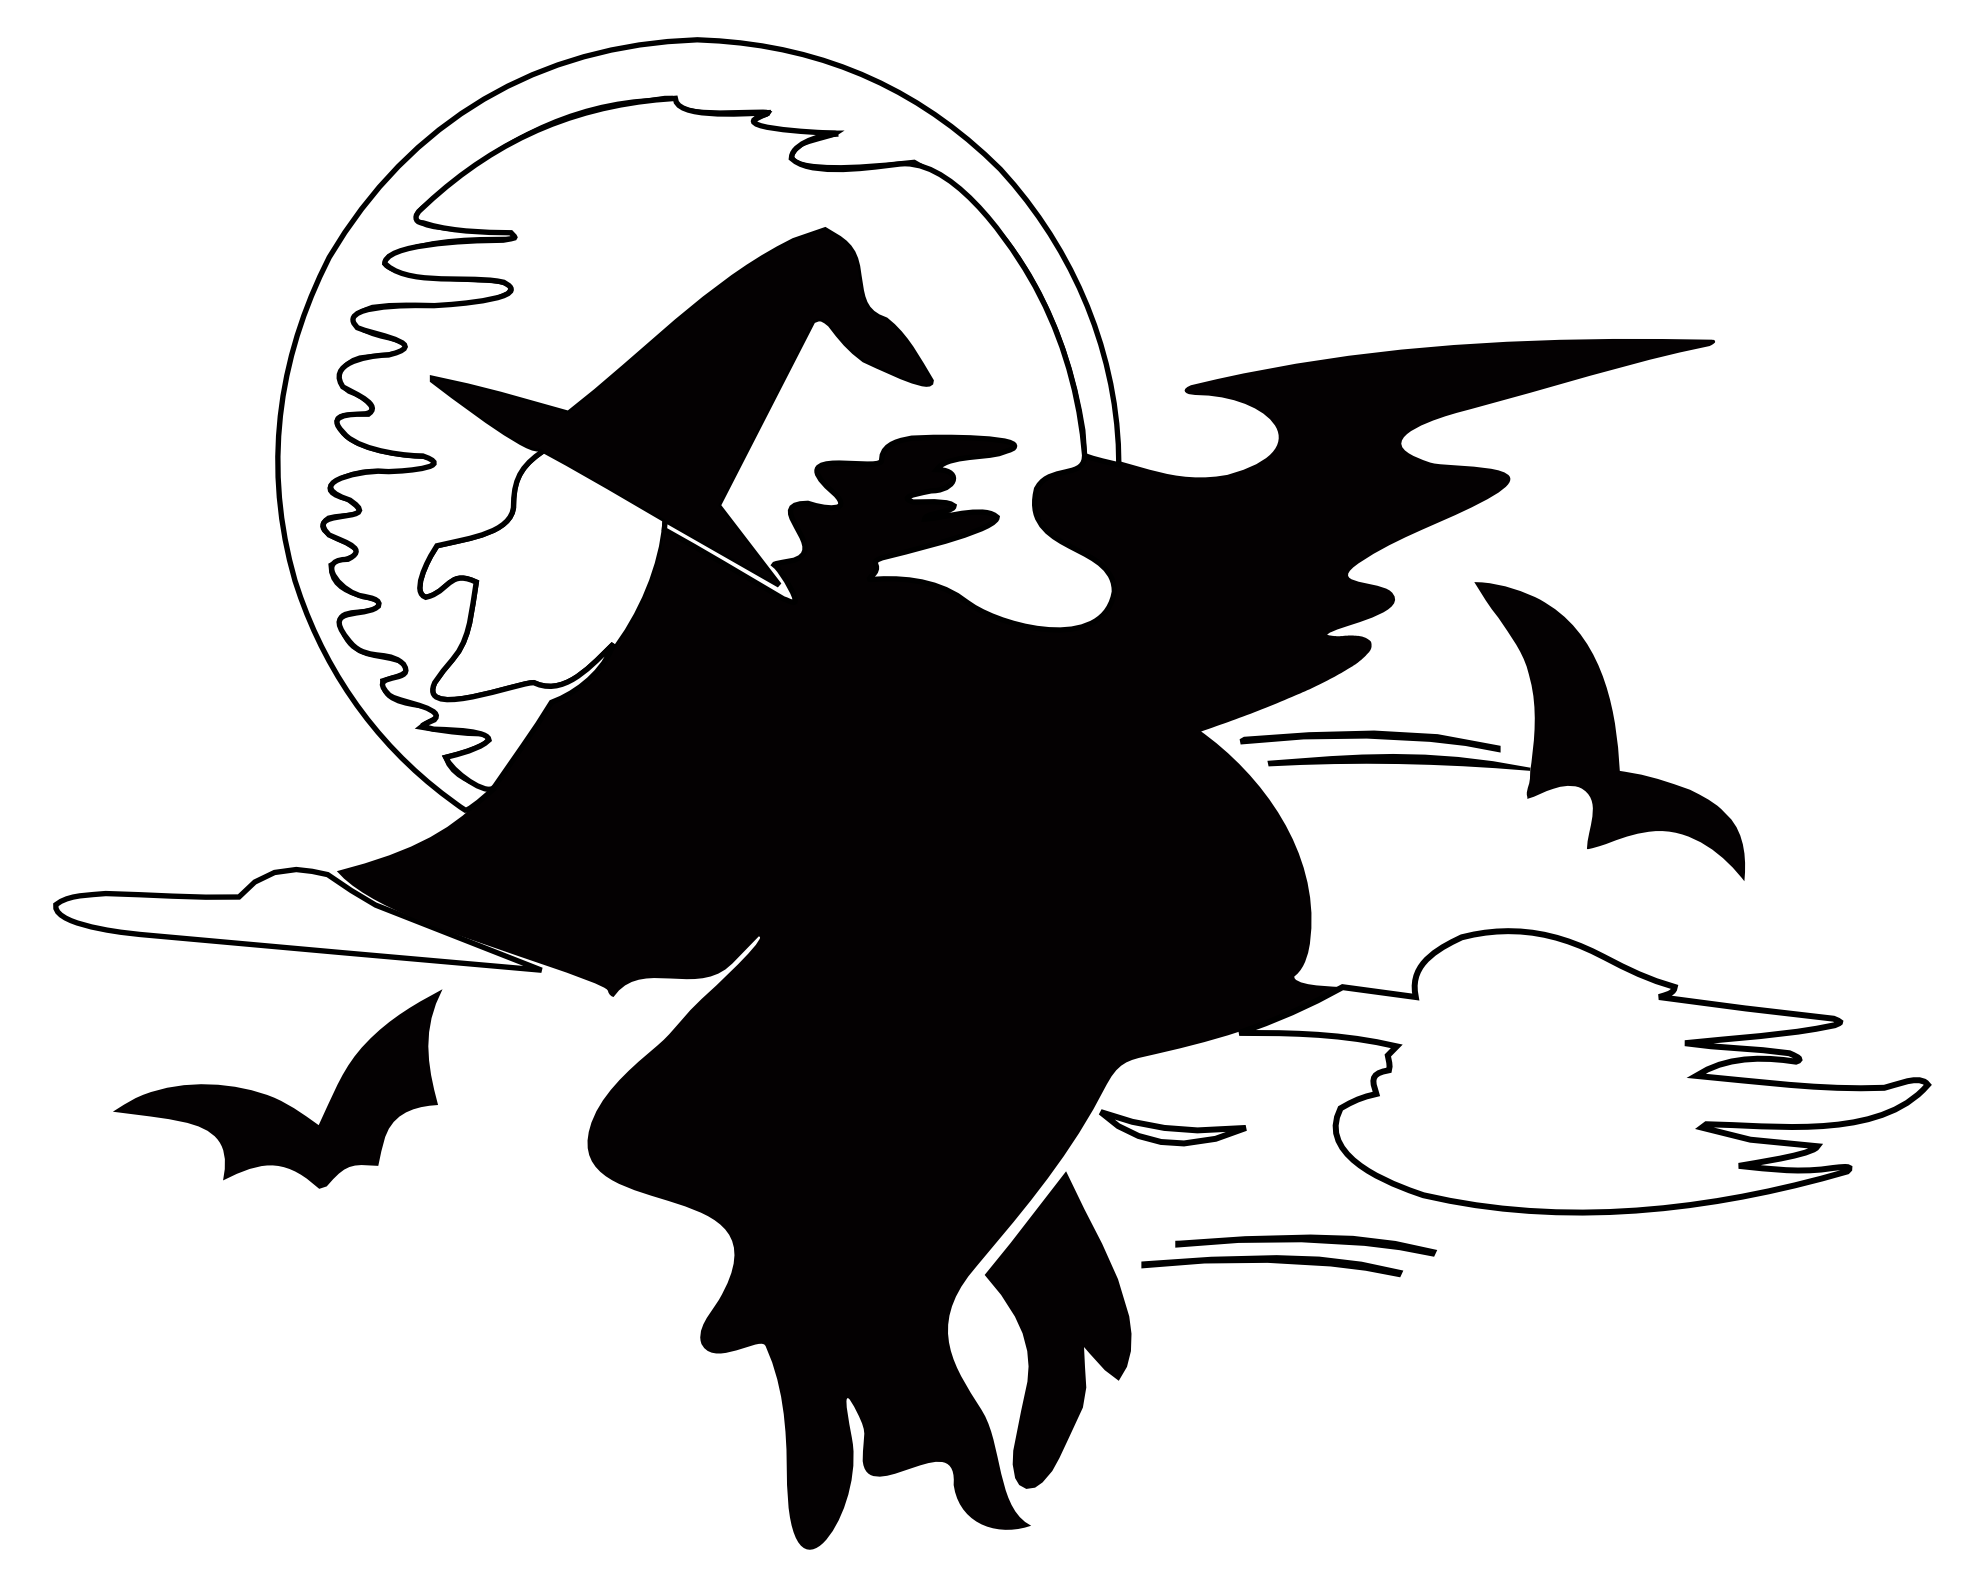 Halloween moon clipart black and white image transparent download clipartist.net » Clip Art » Lakeside Witch over Harvest Moon Black ... image transparent download